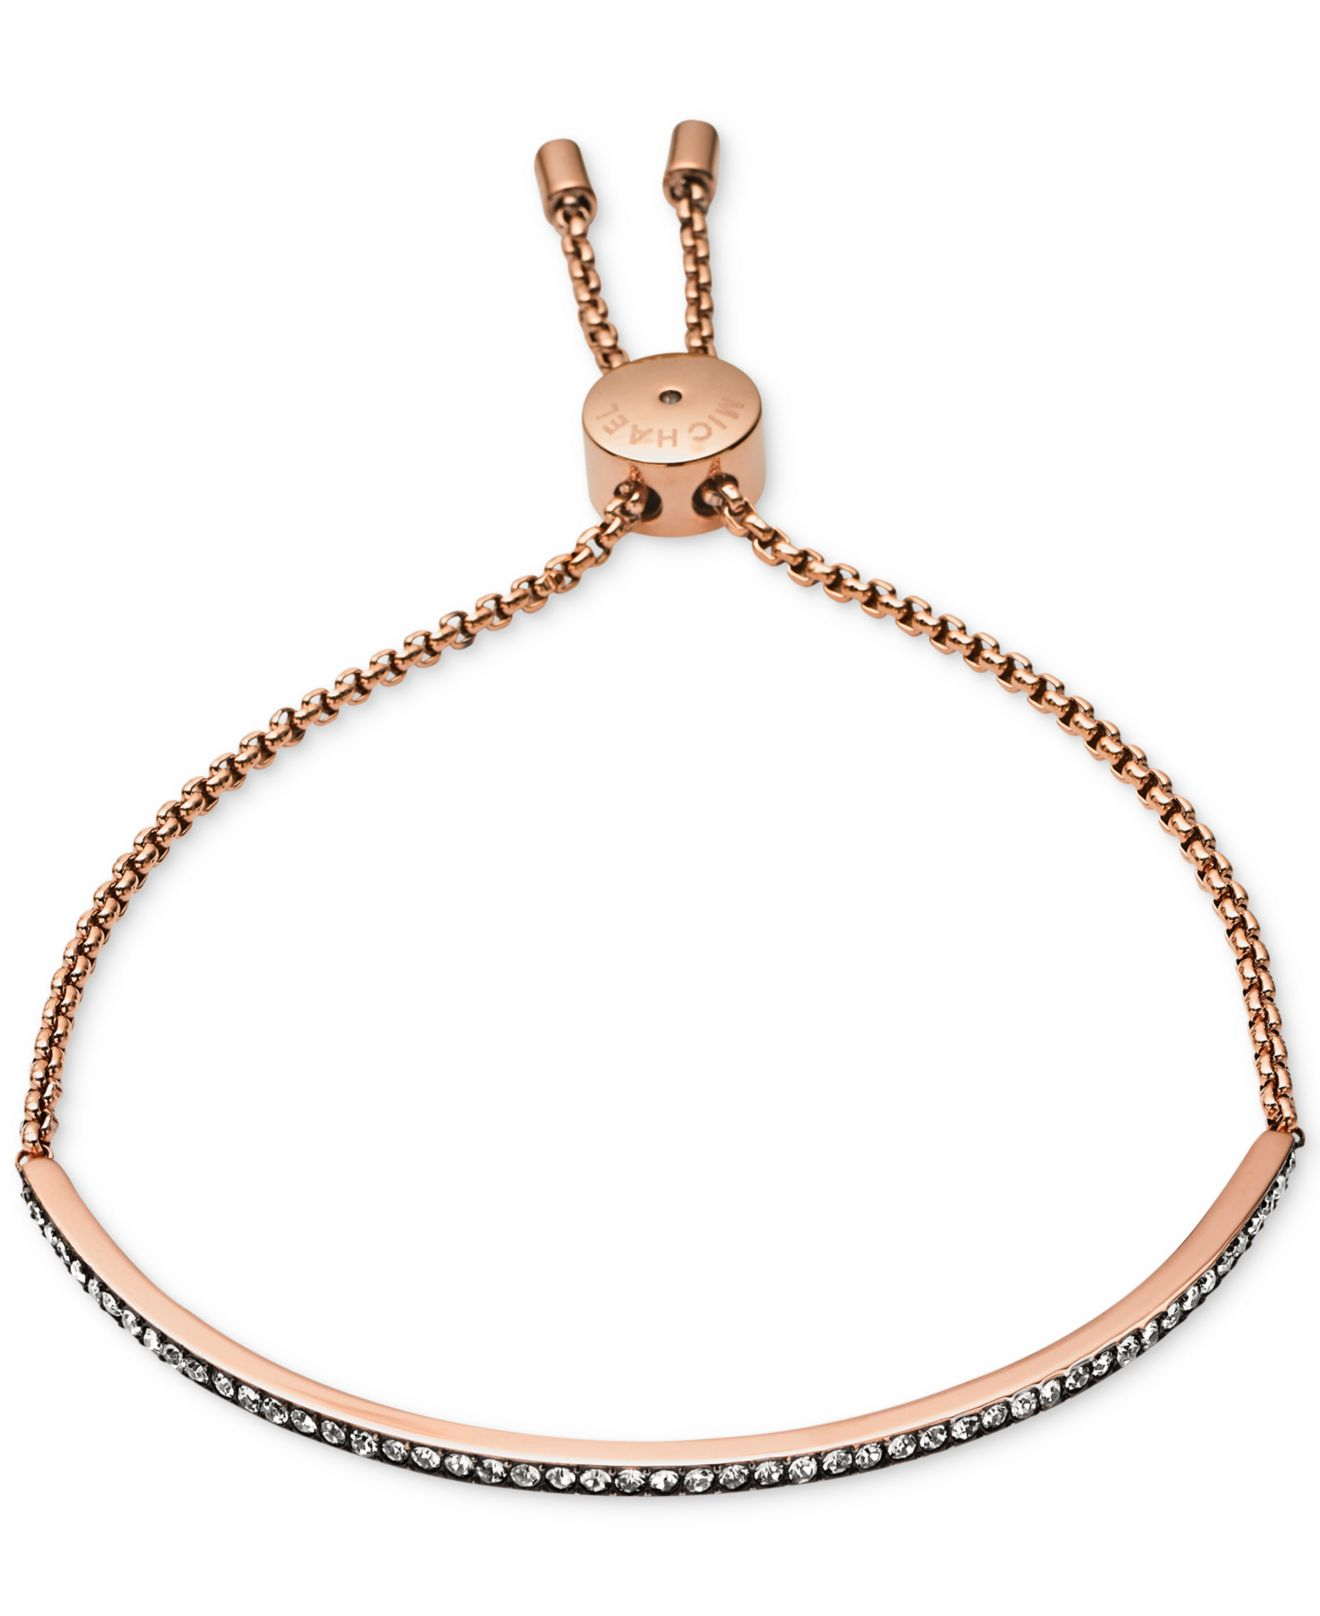 Lyst Michael Kors Rose GoldTone Crystal Slider Bar Bracelet in Pink